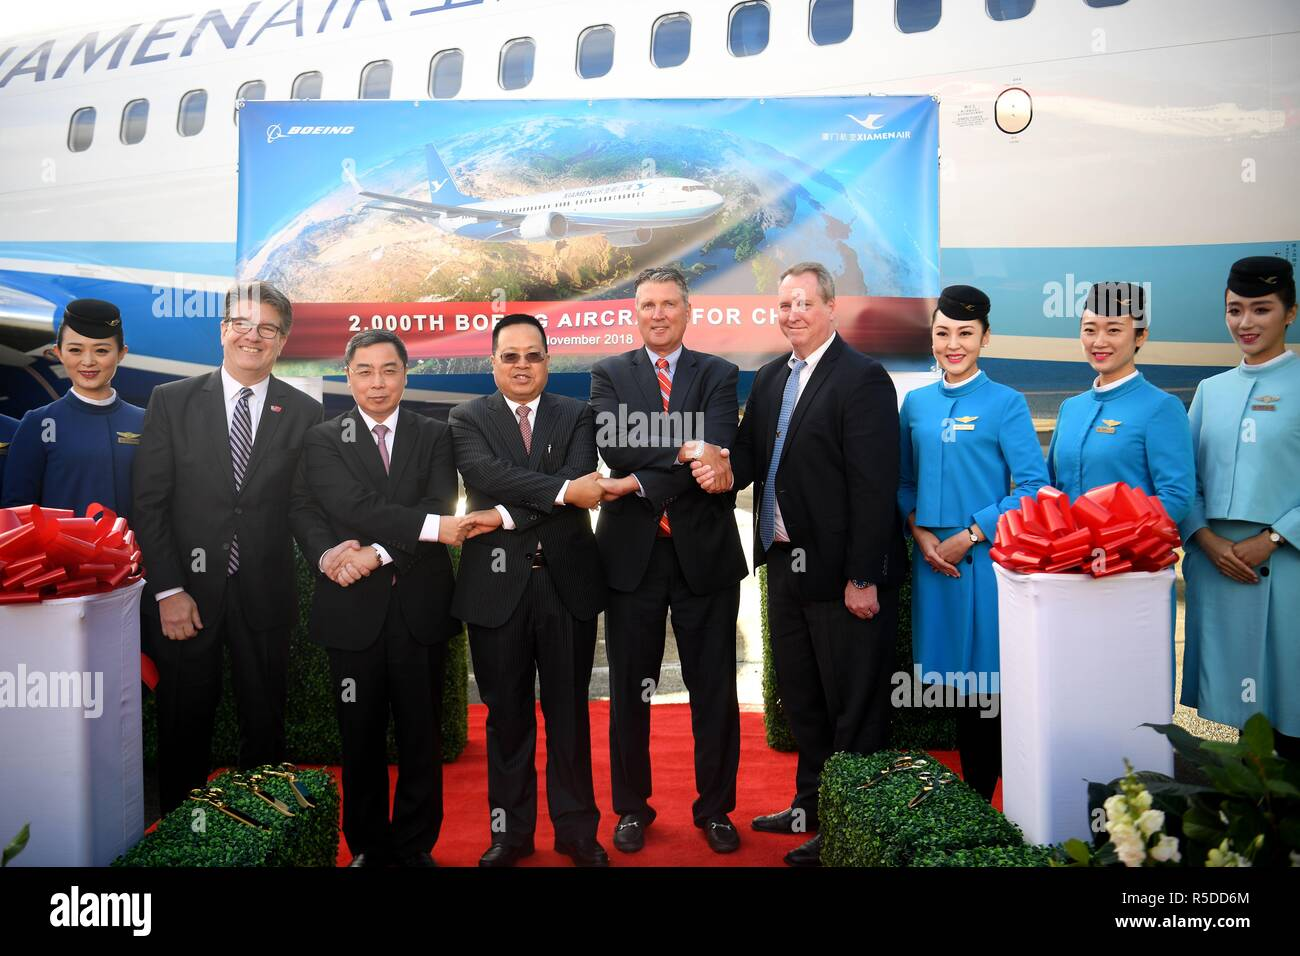 Seattle, Boeing airplane to China in Seattle. 30th Nov, 2018. Guests attend the ribbon-cutting ceremony during the delivering of the 2,000th Boeing airplane to China in Seattle, the United States on Nov. 30, 2018. Top U.S. aircraft manufacturer Boeing Company on Friday delivered its 2,000th airplane to China, which is a milestone for the U.S. aircraft maker in the world's largest commercial aviation market. Credit: Wu Xiaoling/Xinhua/Alamy Live News - Stock Image